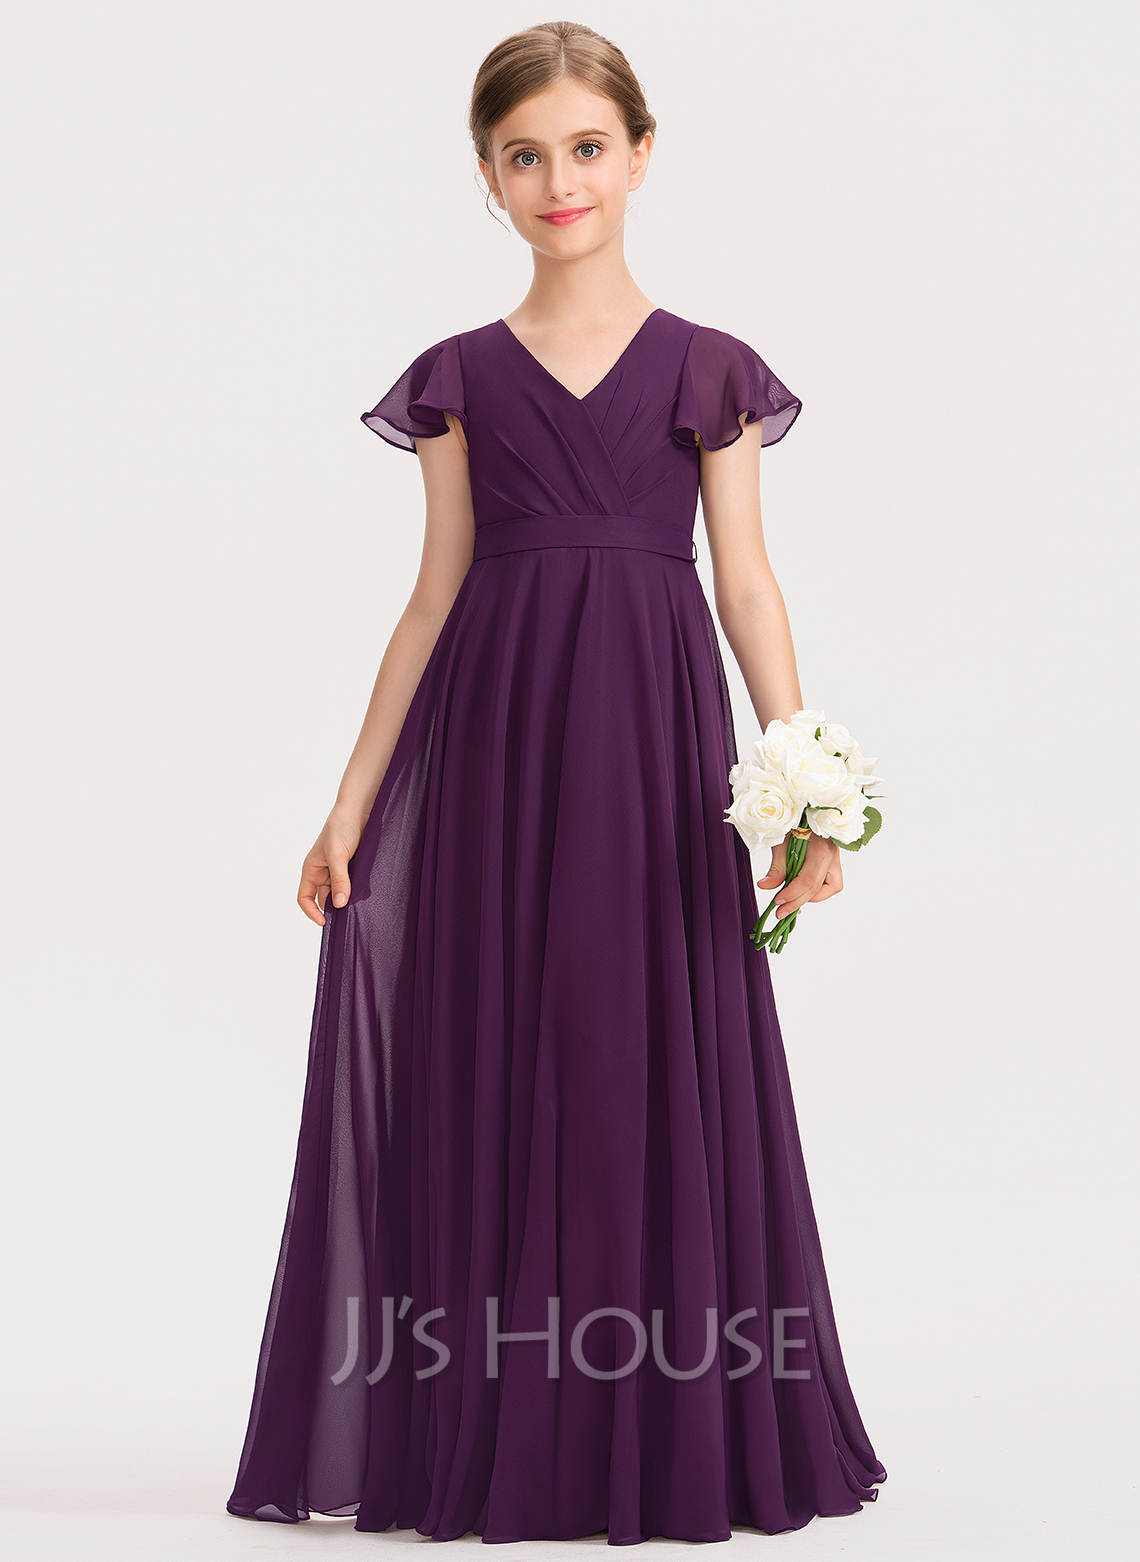 A-Line V-neck Floor-Length Chiffon Junior Bridesmaid Dress With Bow(s) Cascading Ruffles